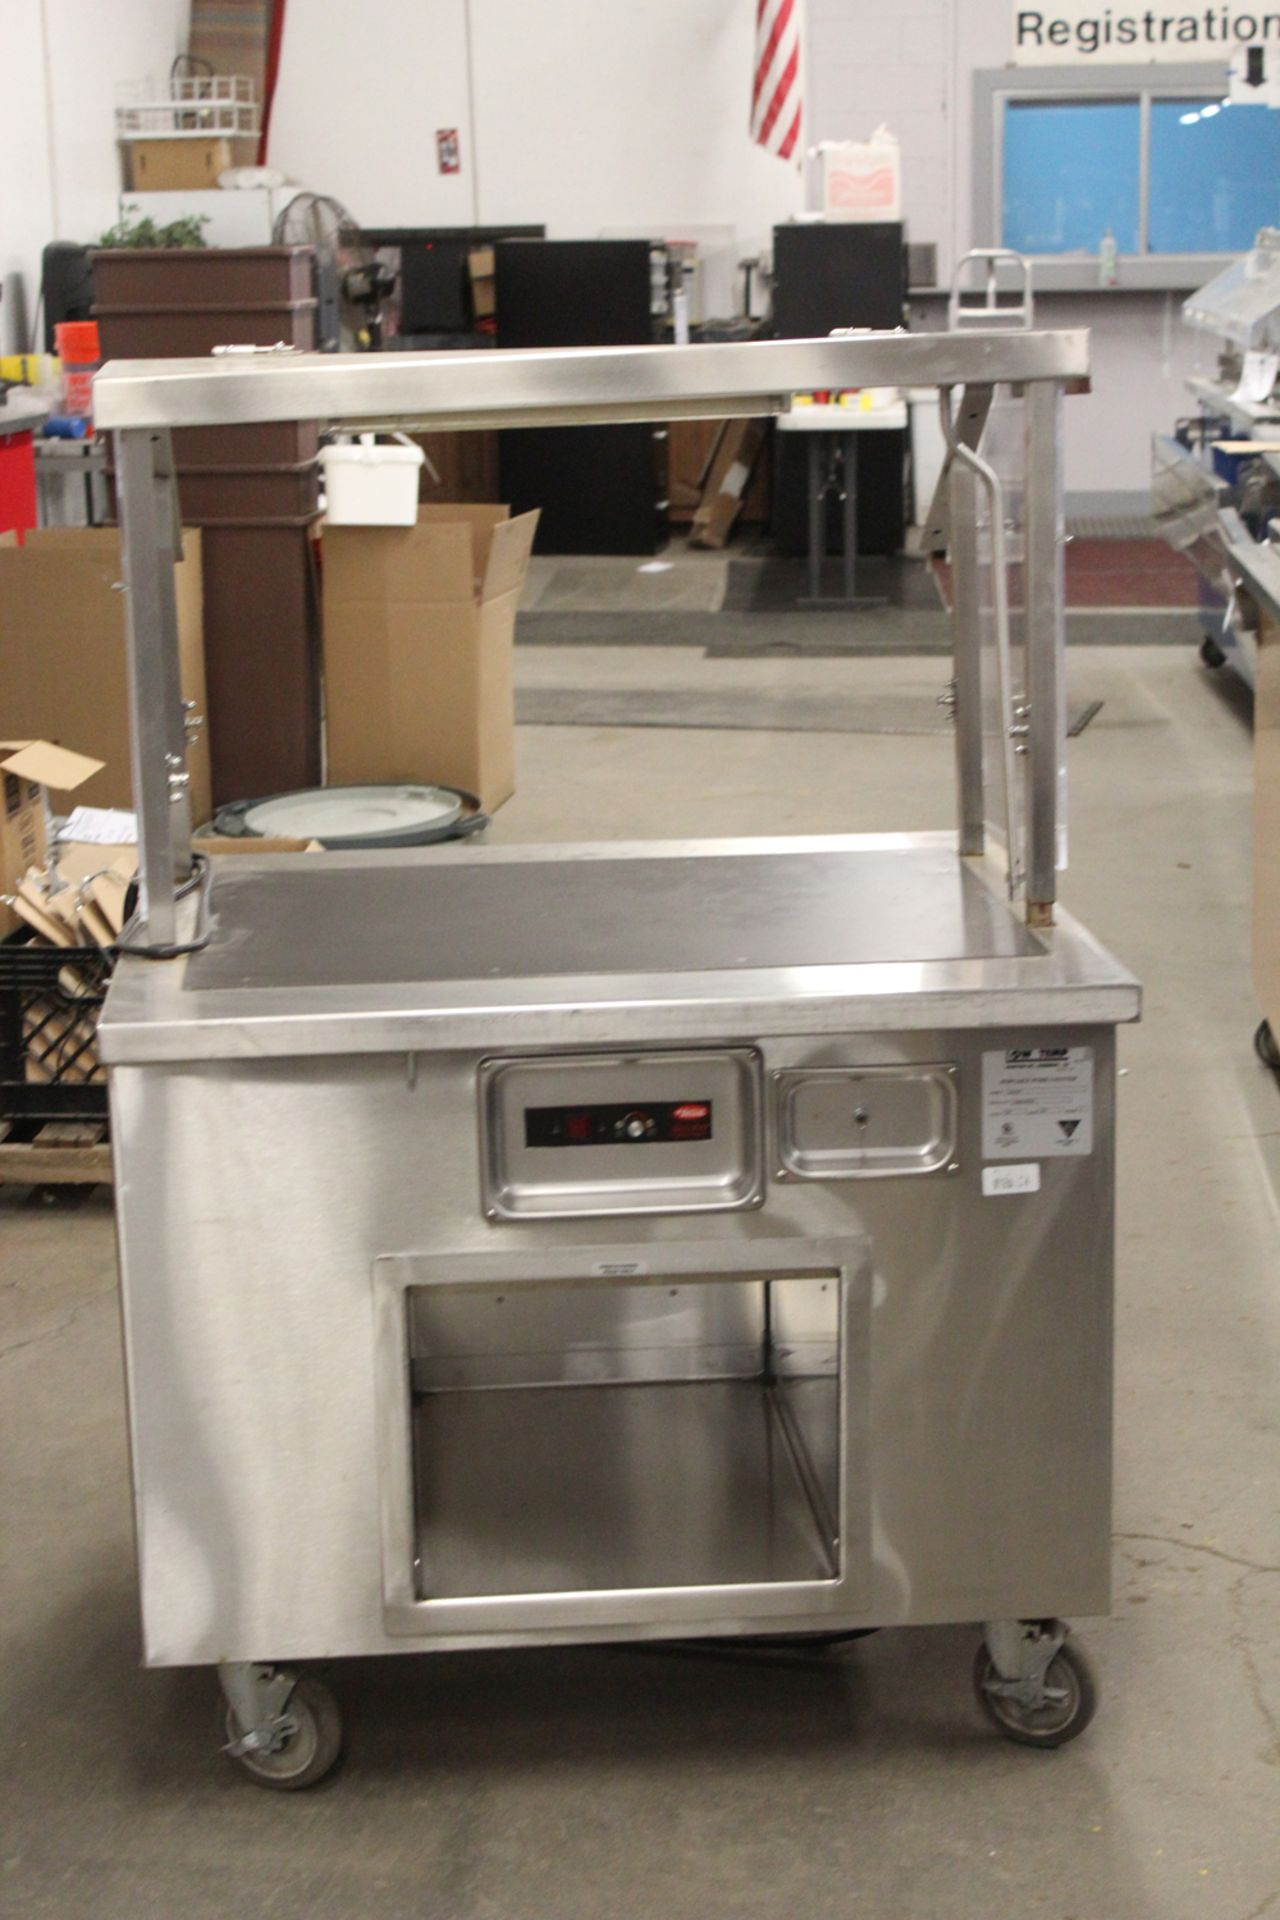 Lot 46 - low temp portable work counter model K36-ST